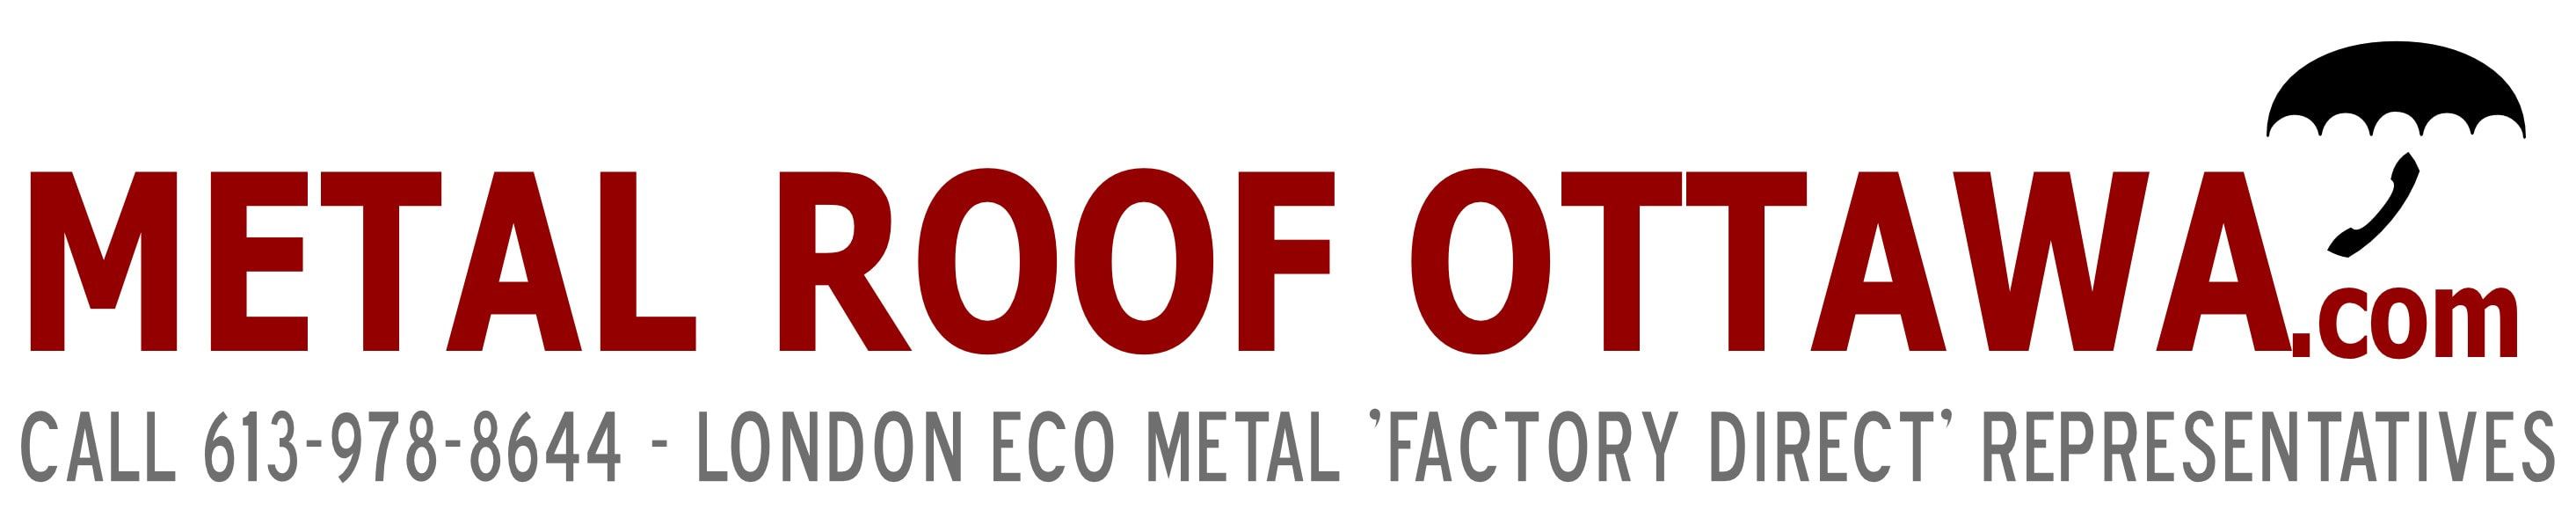 The Average Cost Of Our Metal Roofs In Ottawa